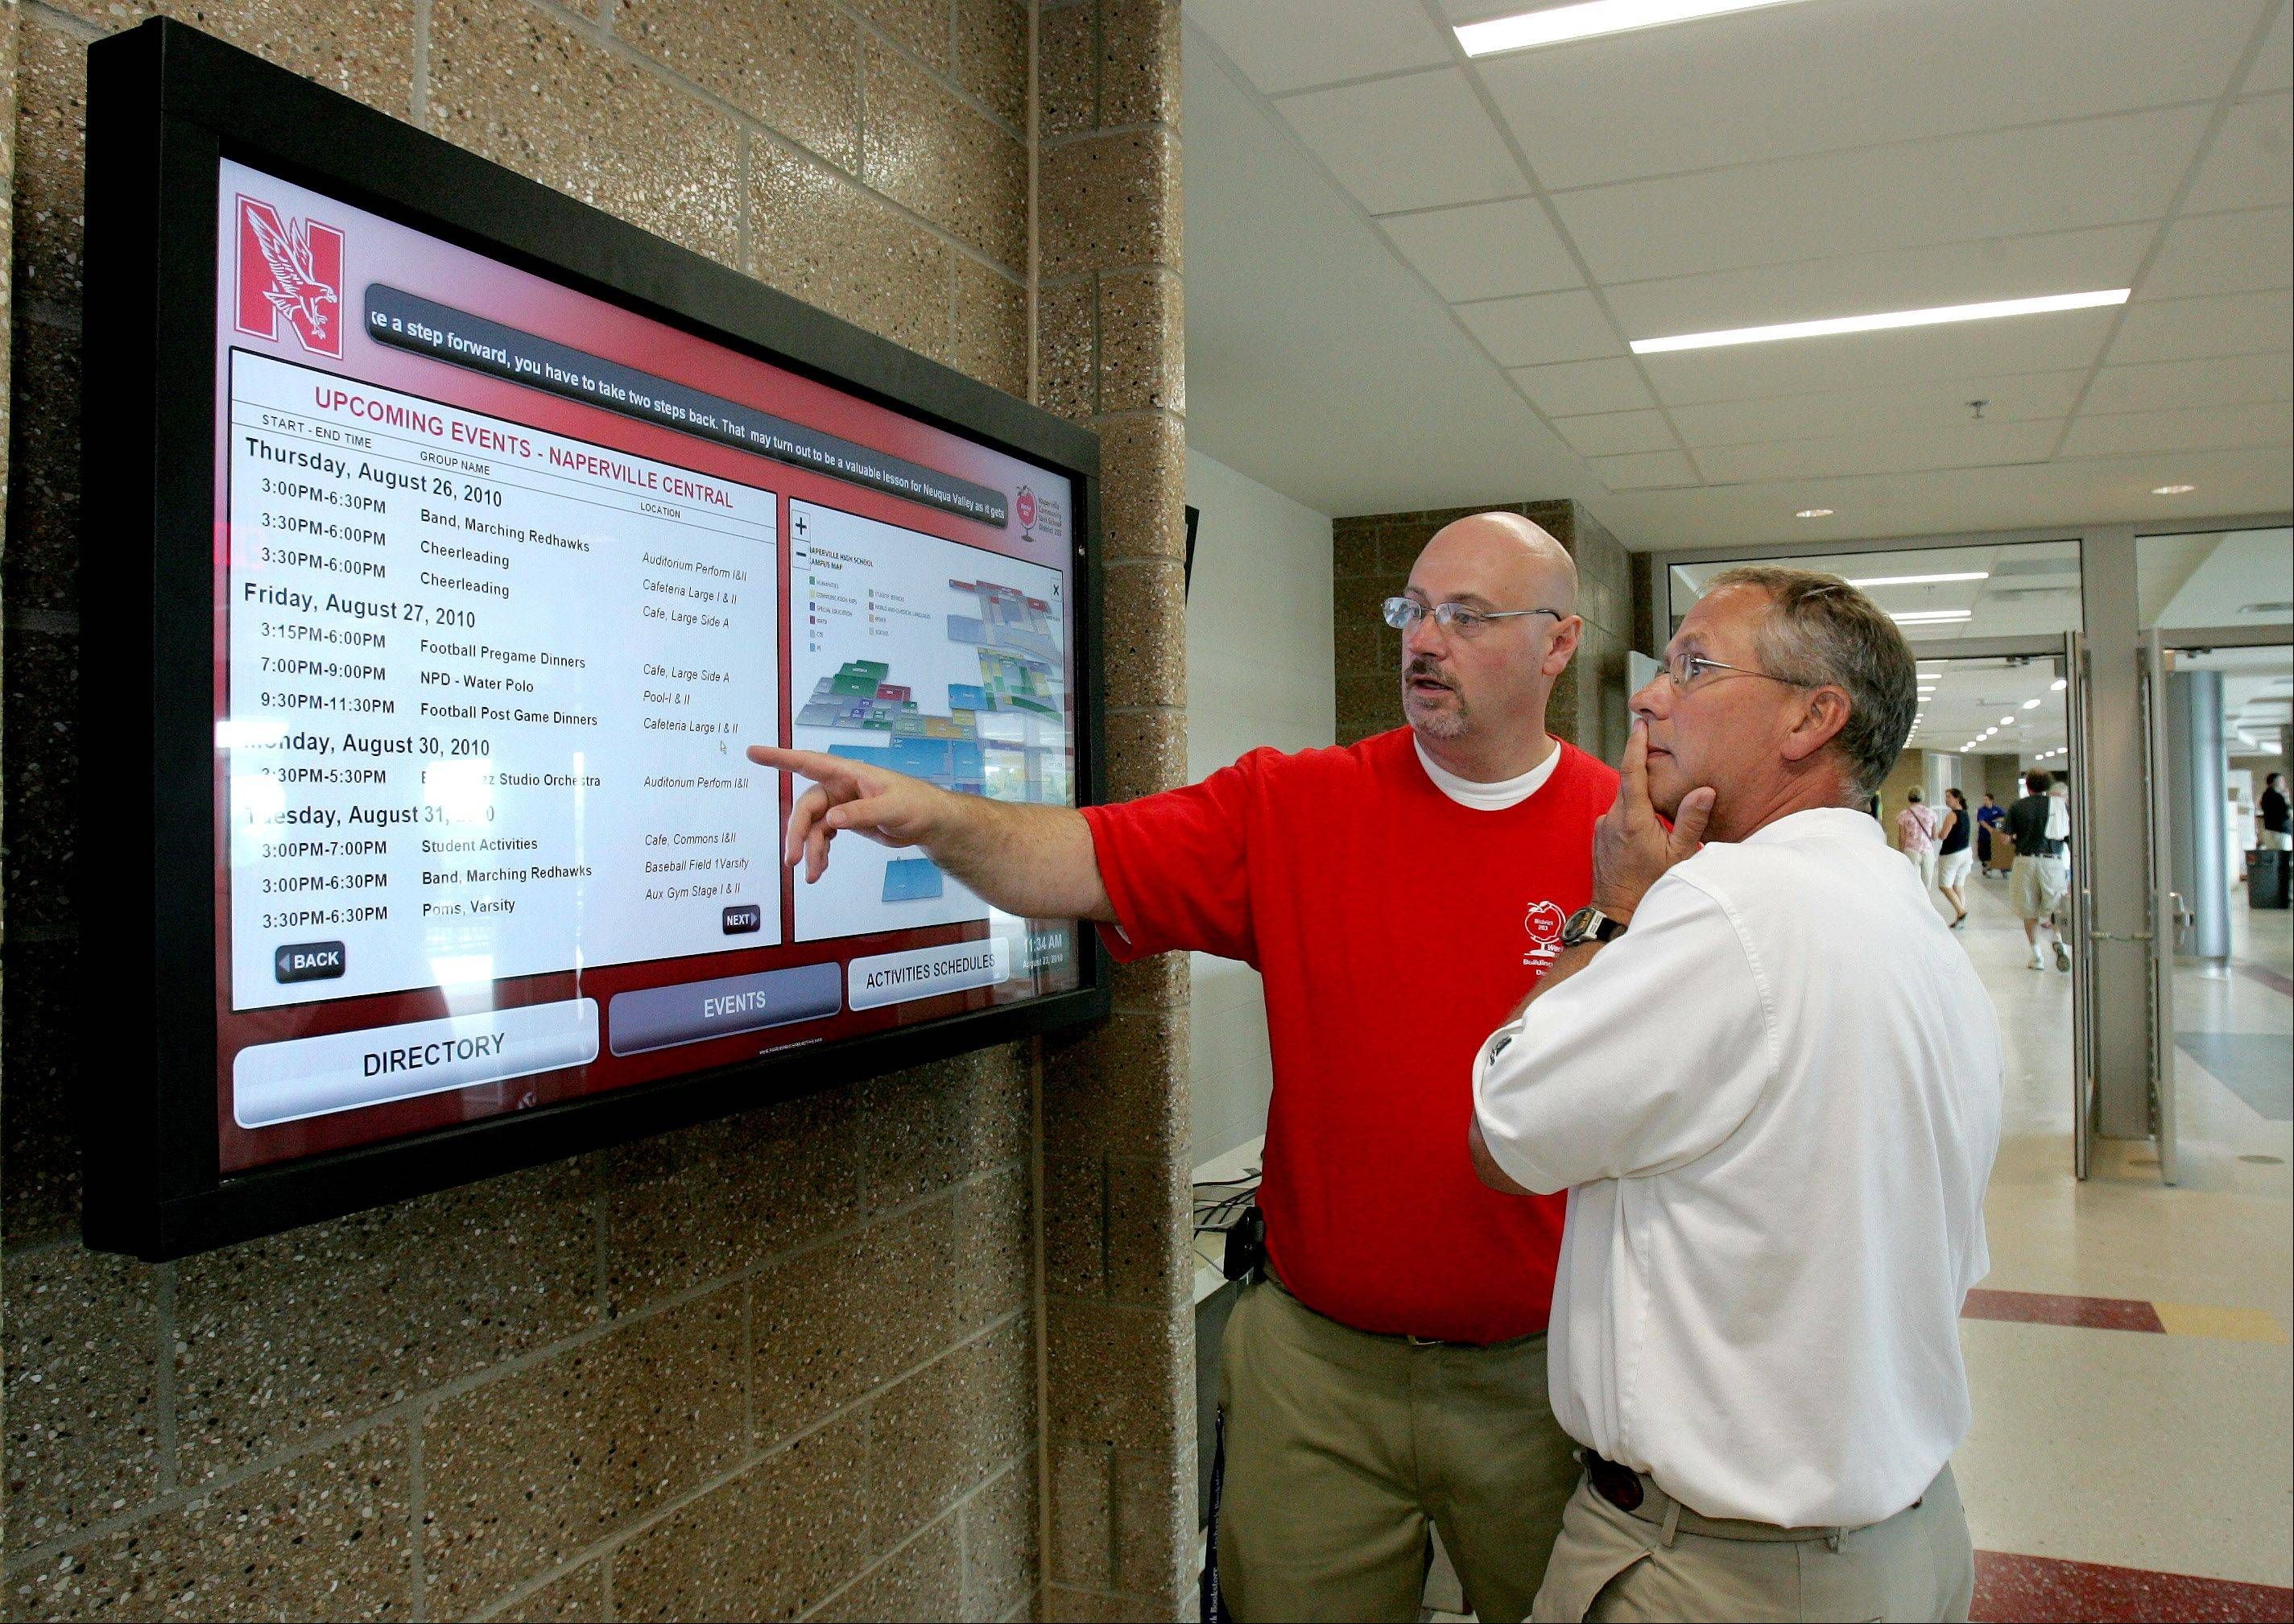 New-look Naperville Central opens doors to community